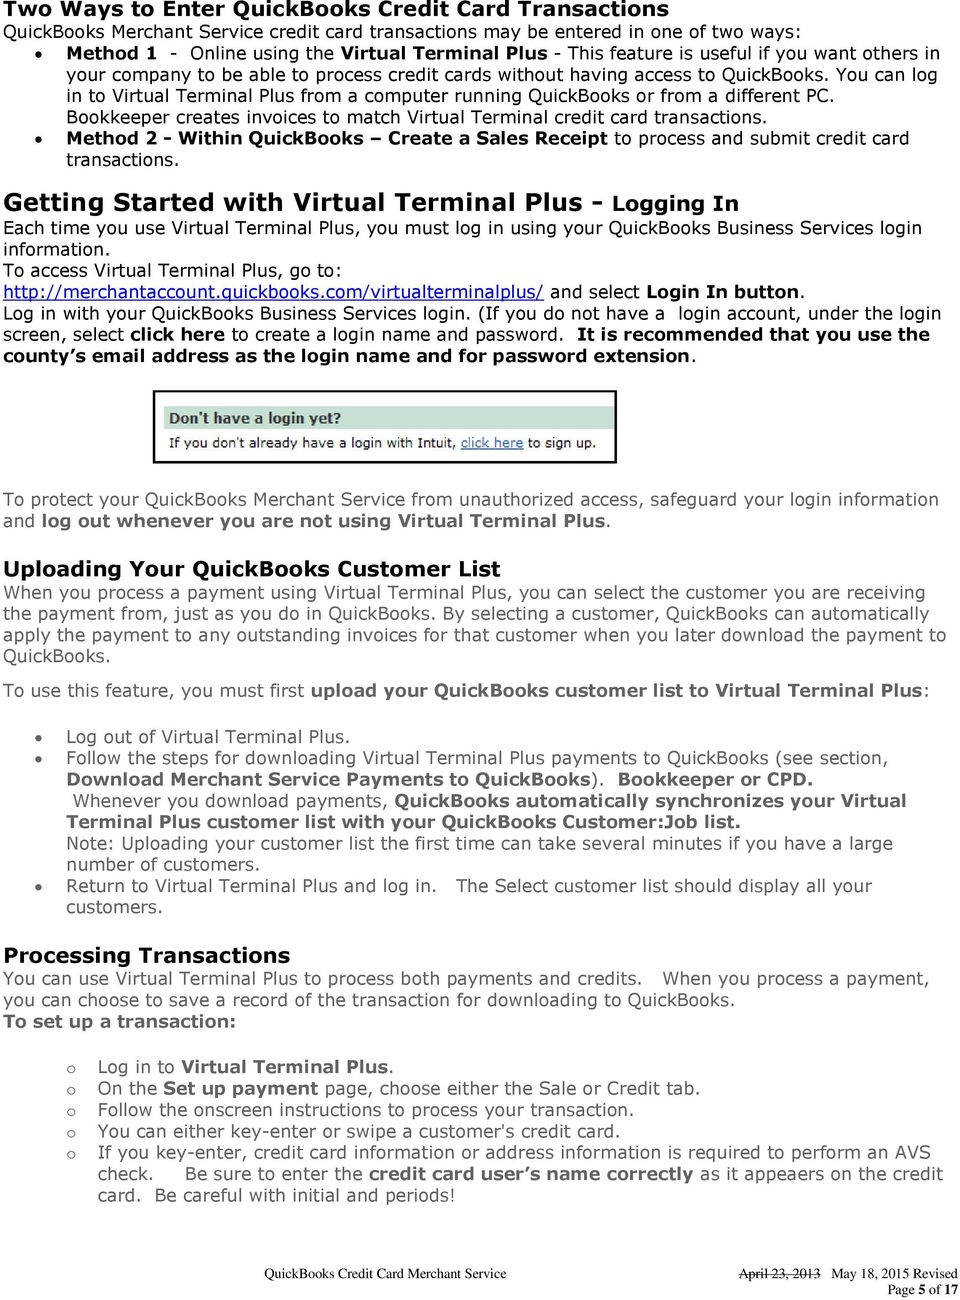 You can log in to Virtual Terminal Plus from a computer running QuickBooks or from a different PC. Bookkeeper creates invoices to match Virtual Terminal credit card transactions.